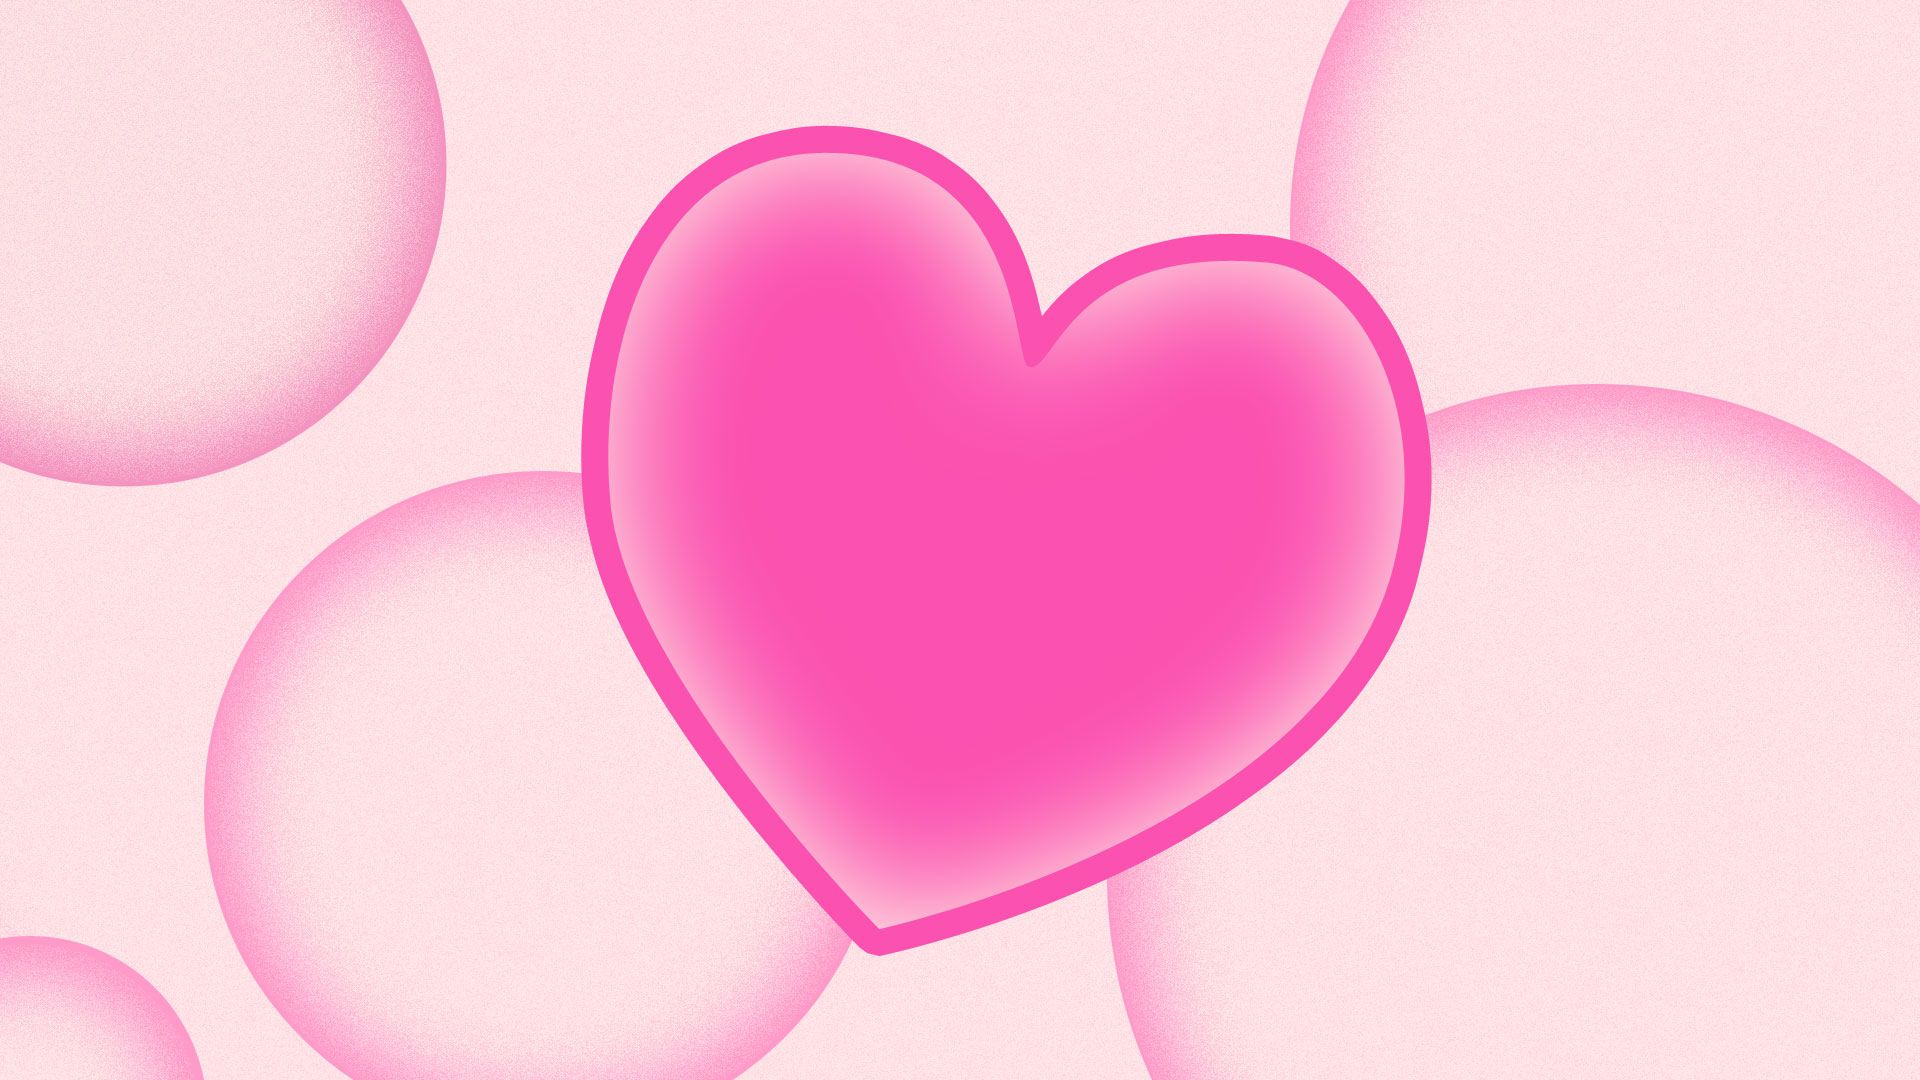 Wallpaper Cute Plain Corazones Rosas Hd Fondosdepantalla Top